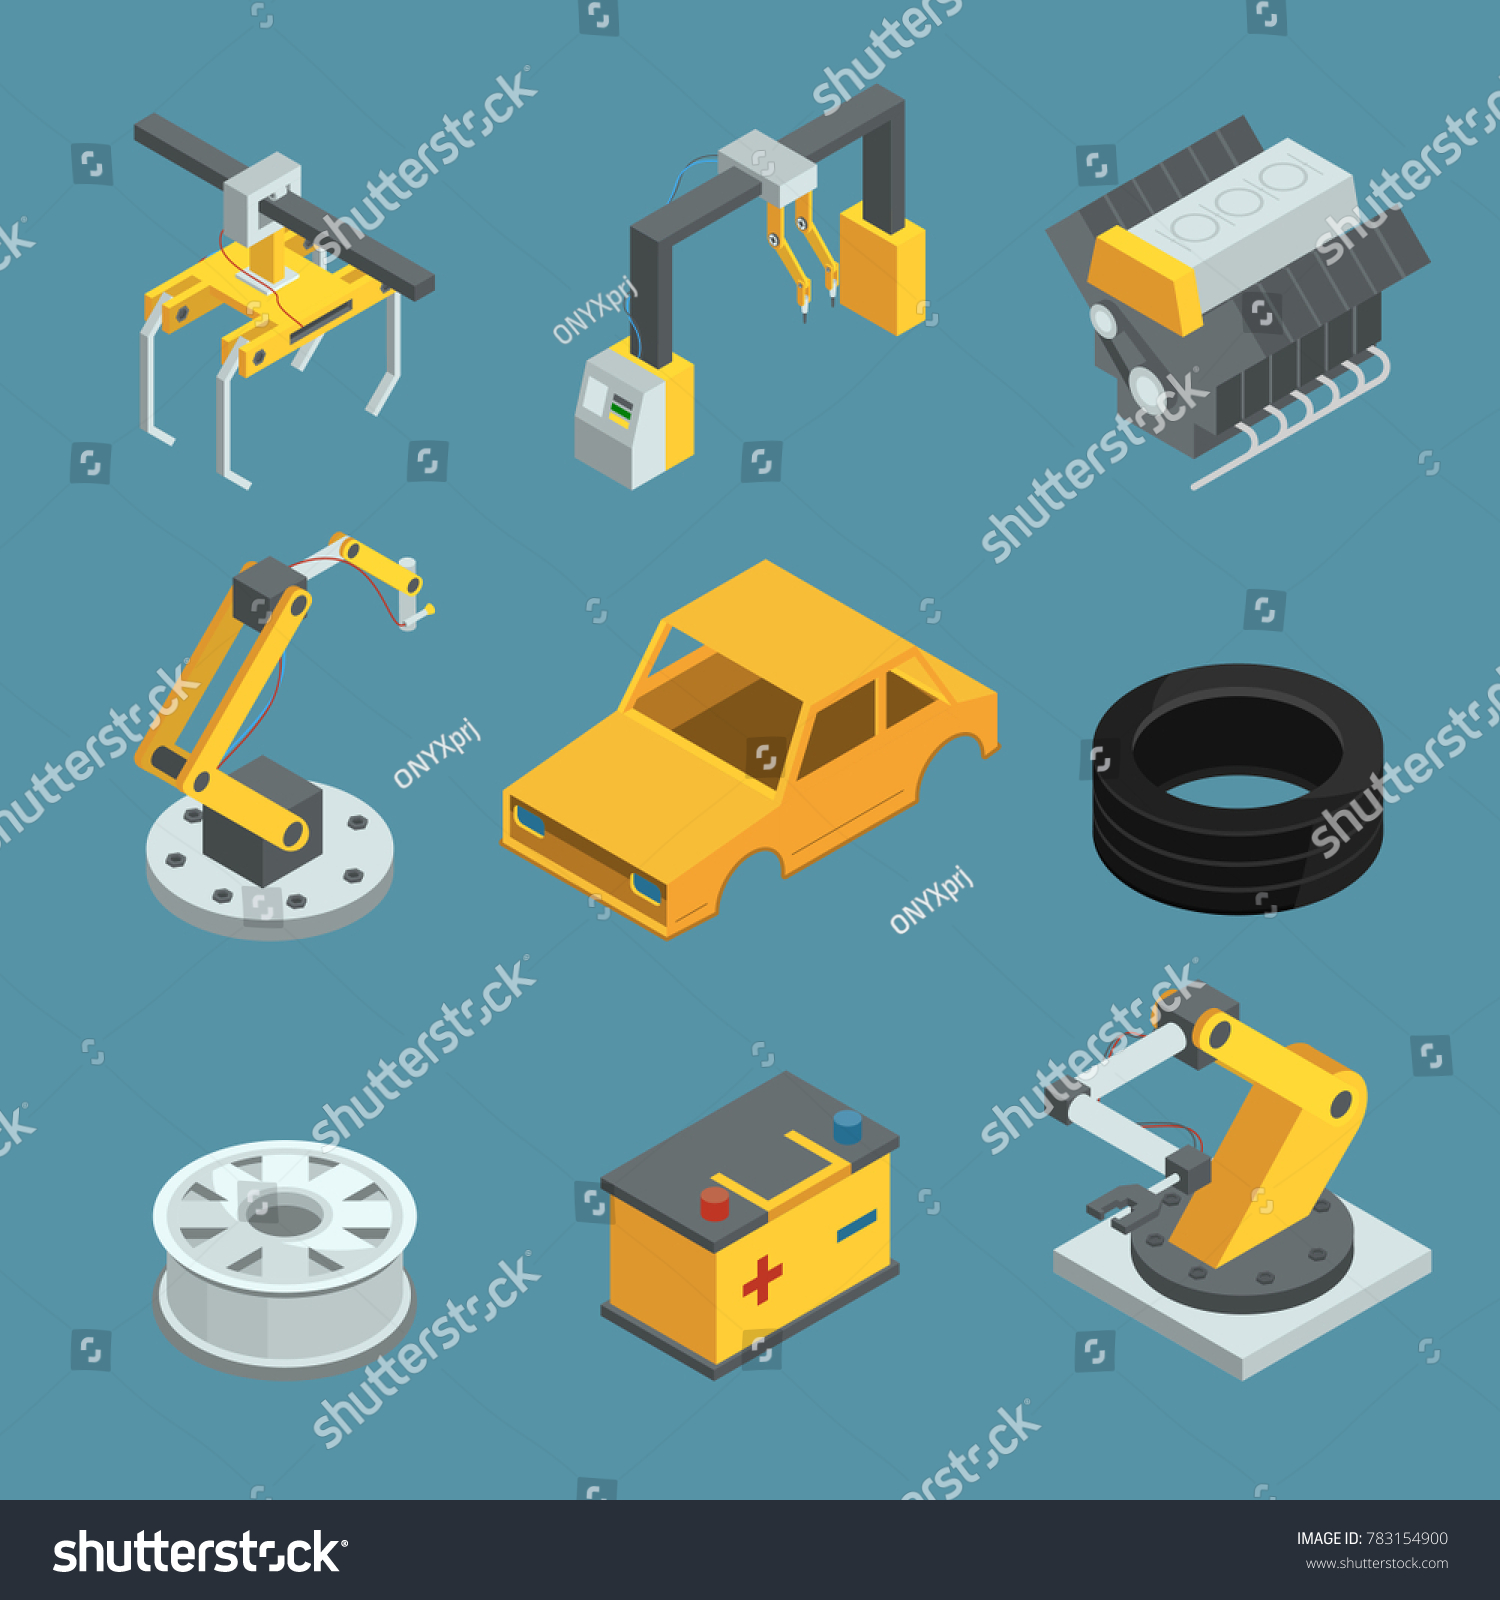 Car Manufacturing Process Diagram Wiring And Ebooks Flow For Automotive Industry Factory Different Technic Stock Rh Shutterstock Com Chart Extrusion